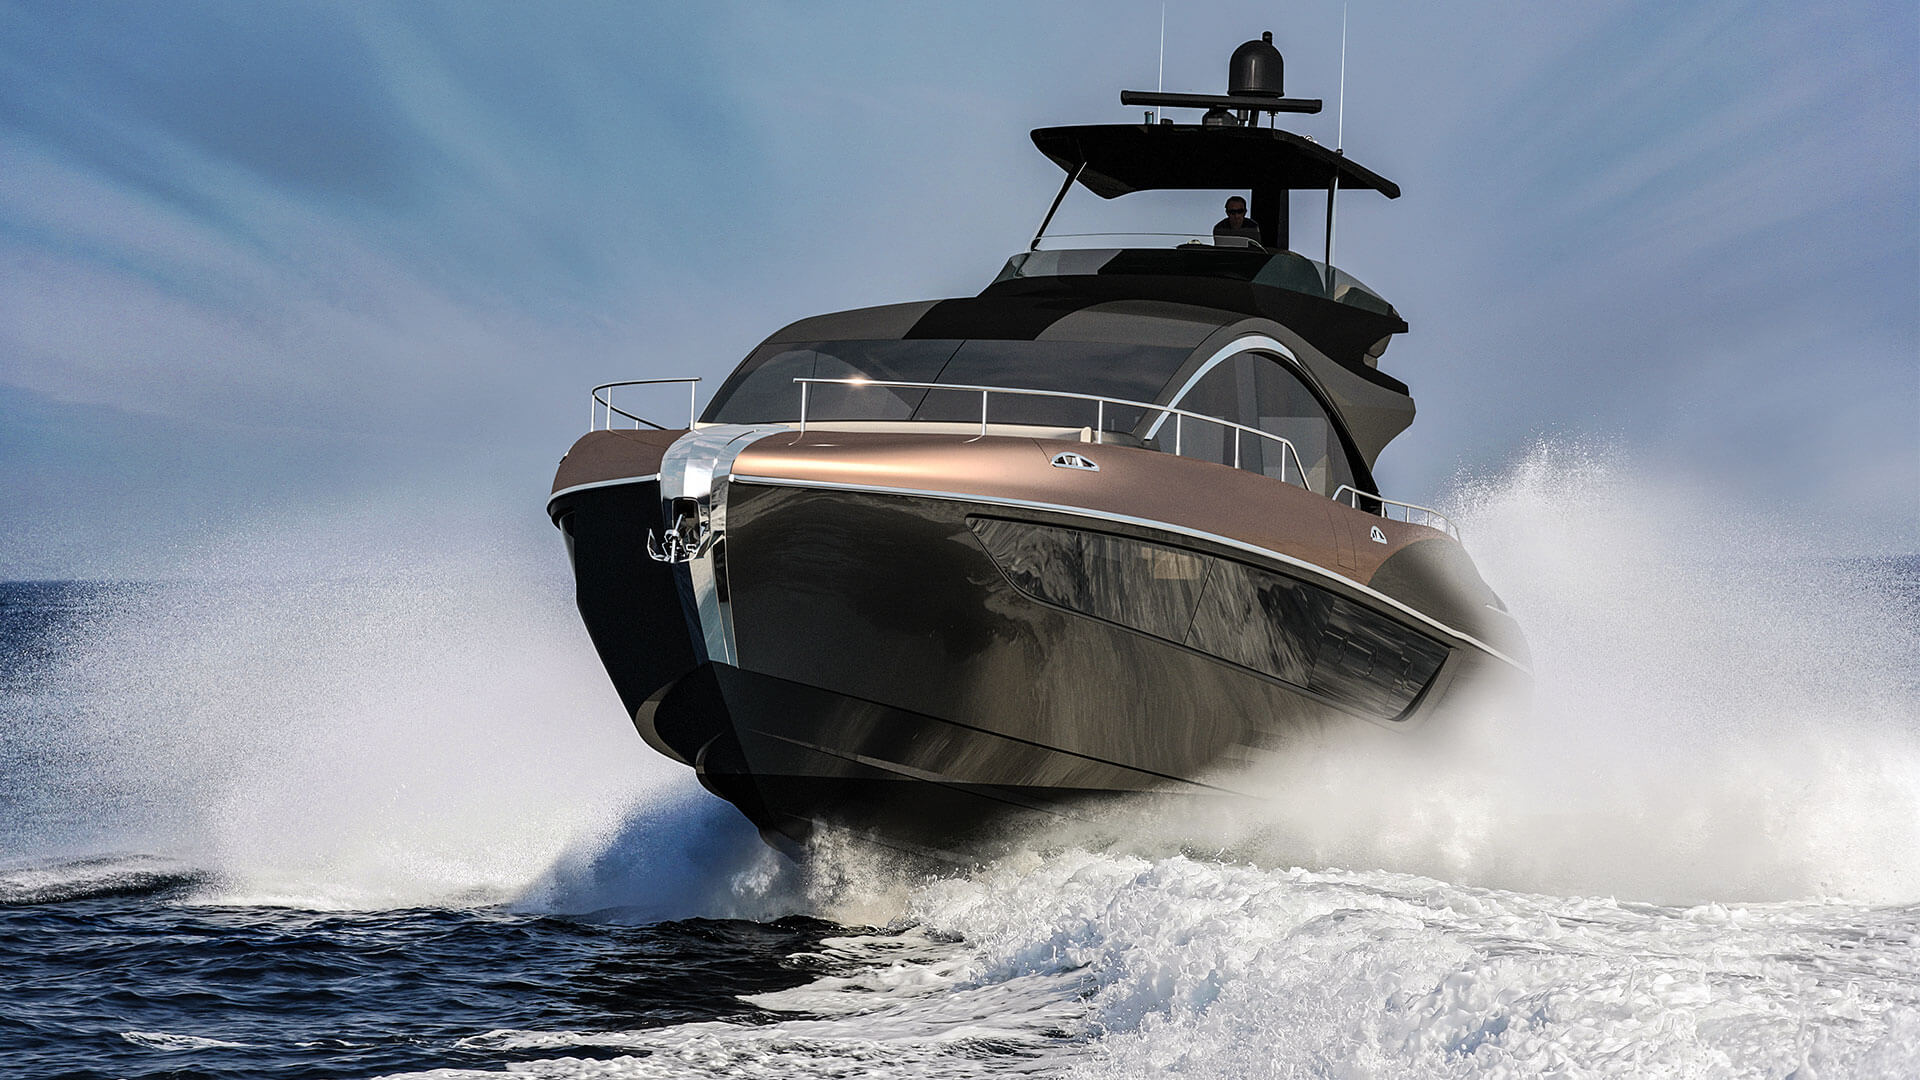 2019 lexus ly 650 luxury yacht gallery 04